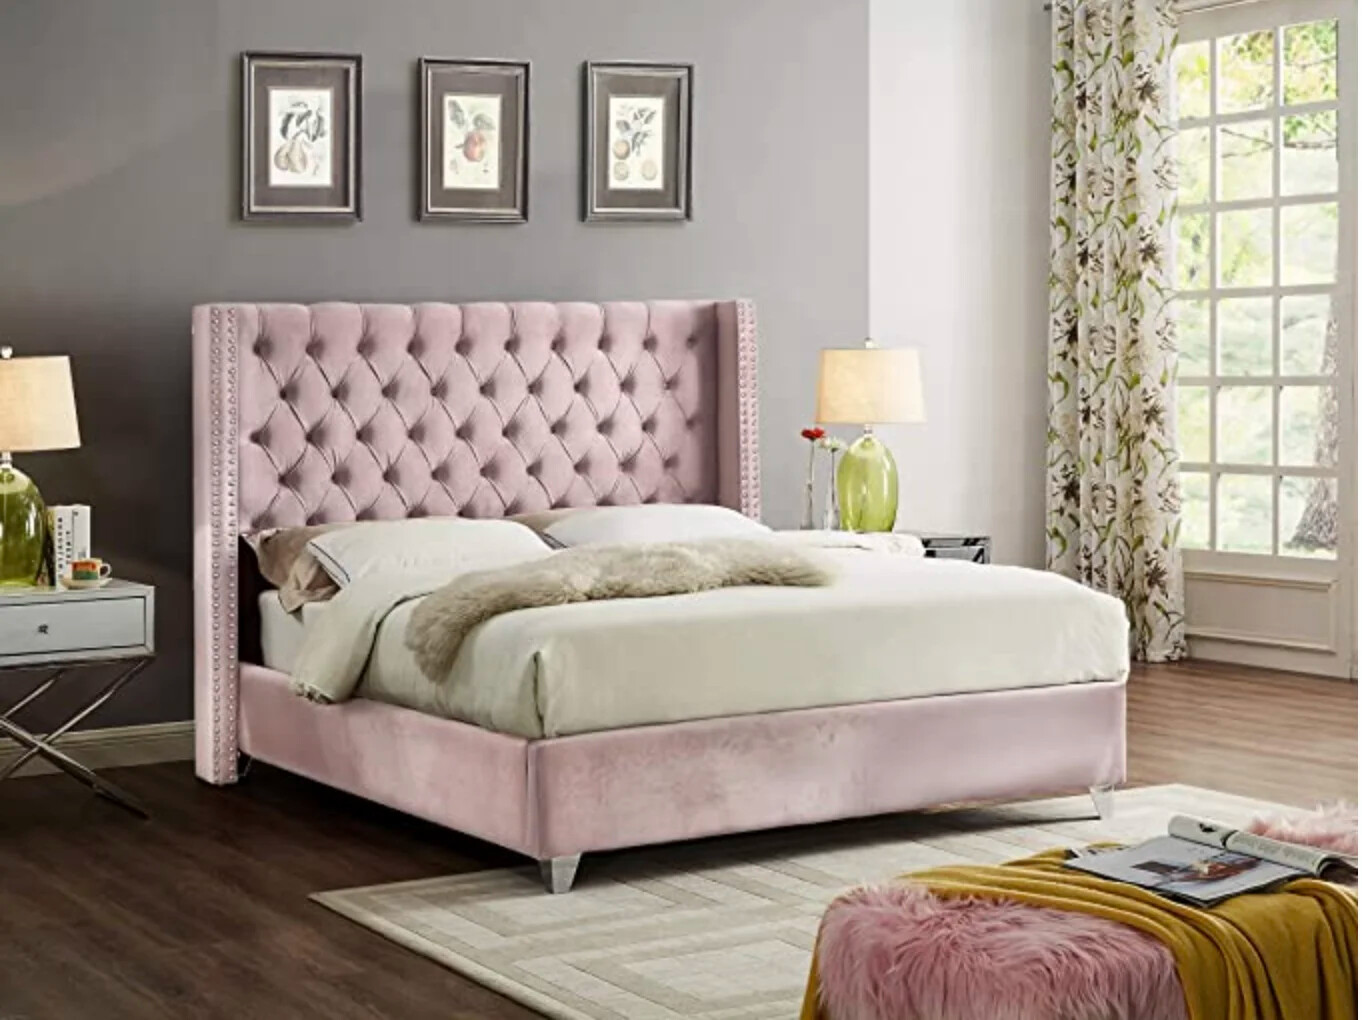 Uno Wing Bed in Pink Color